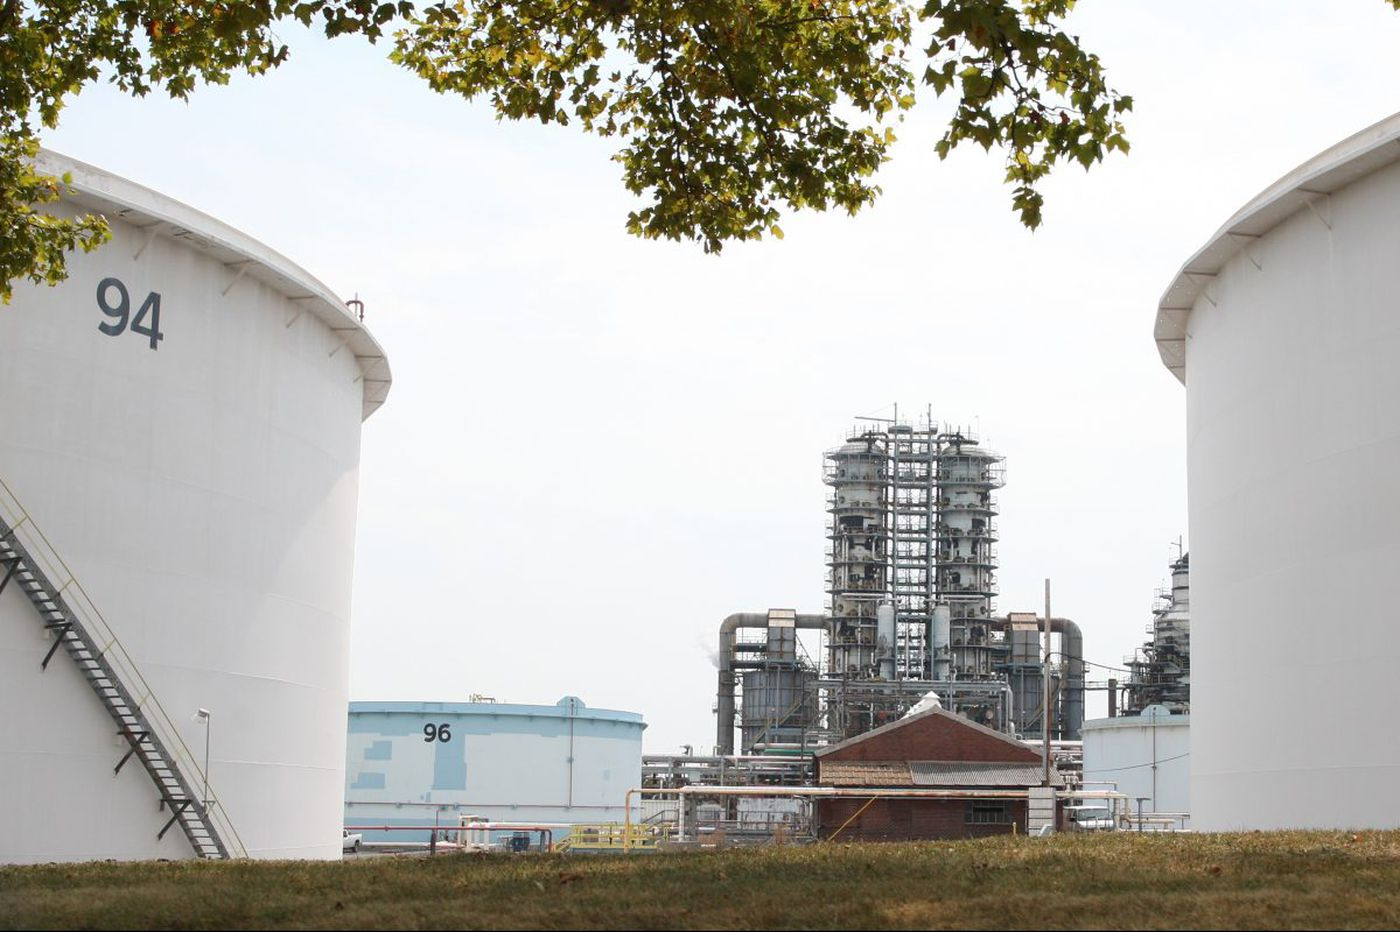 Govs. Corbett and Rendell: Reforming the Renewable Fuel Standard will save refinery jobs in Pa.